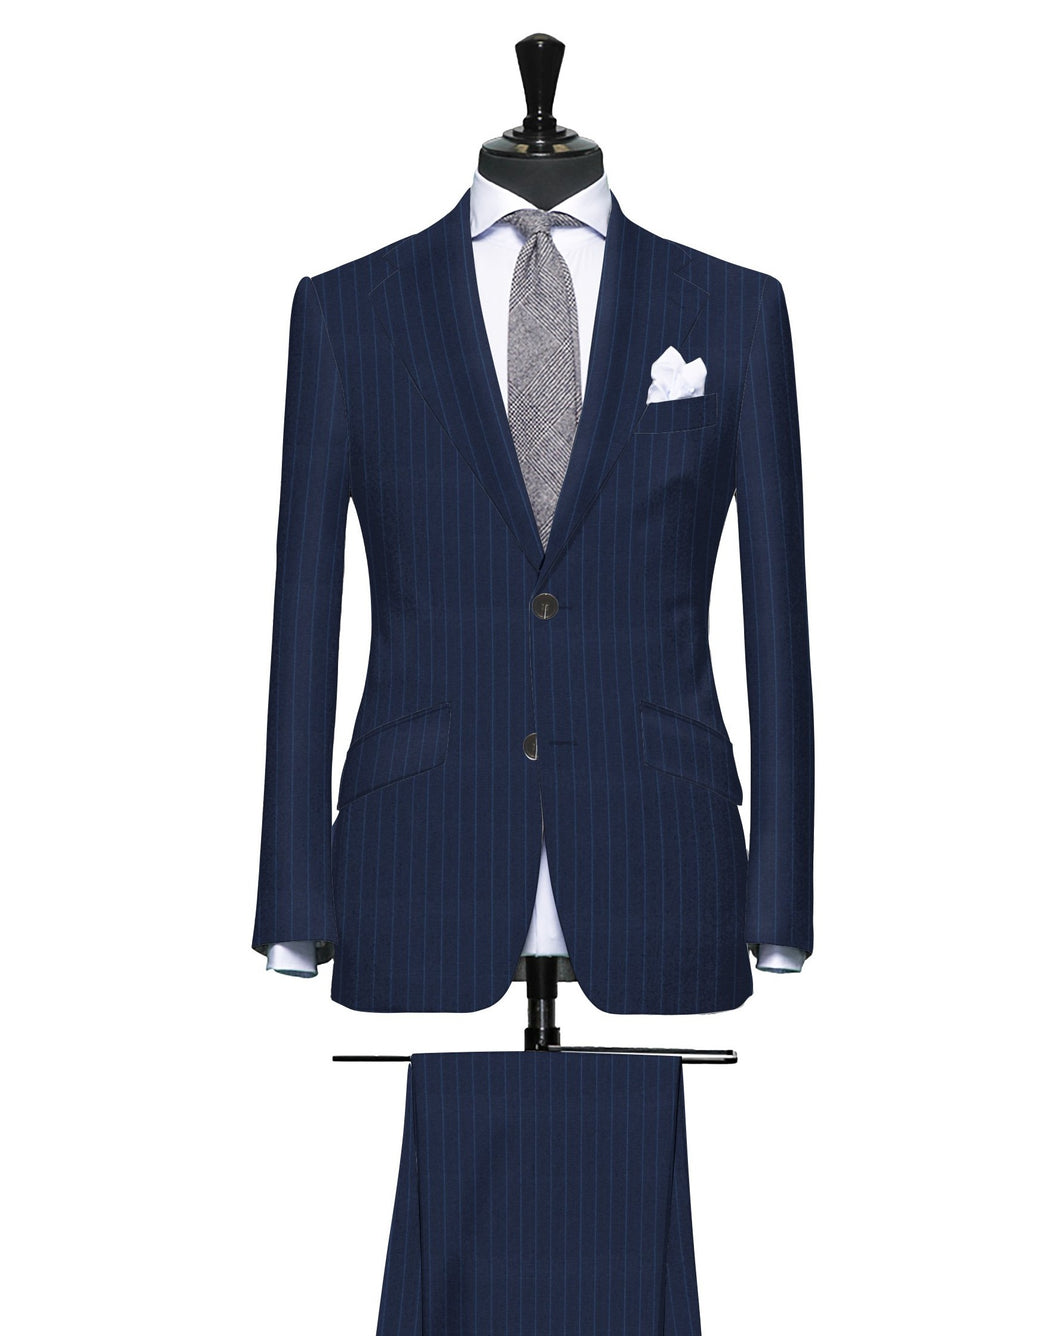 Blue Tone on Tone Pinstripe, Super 150, Wool